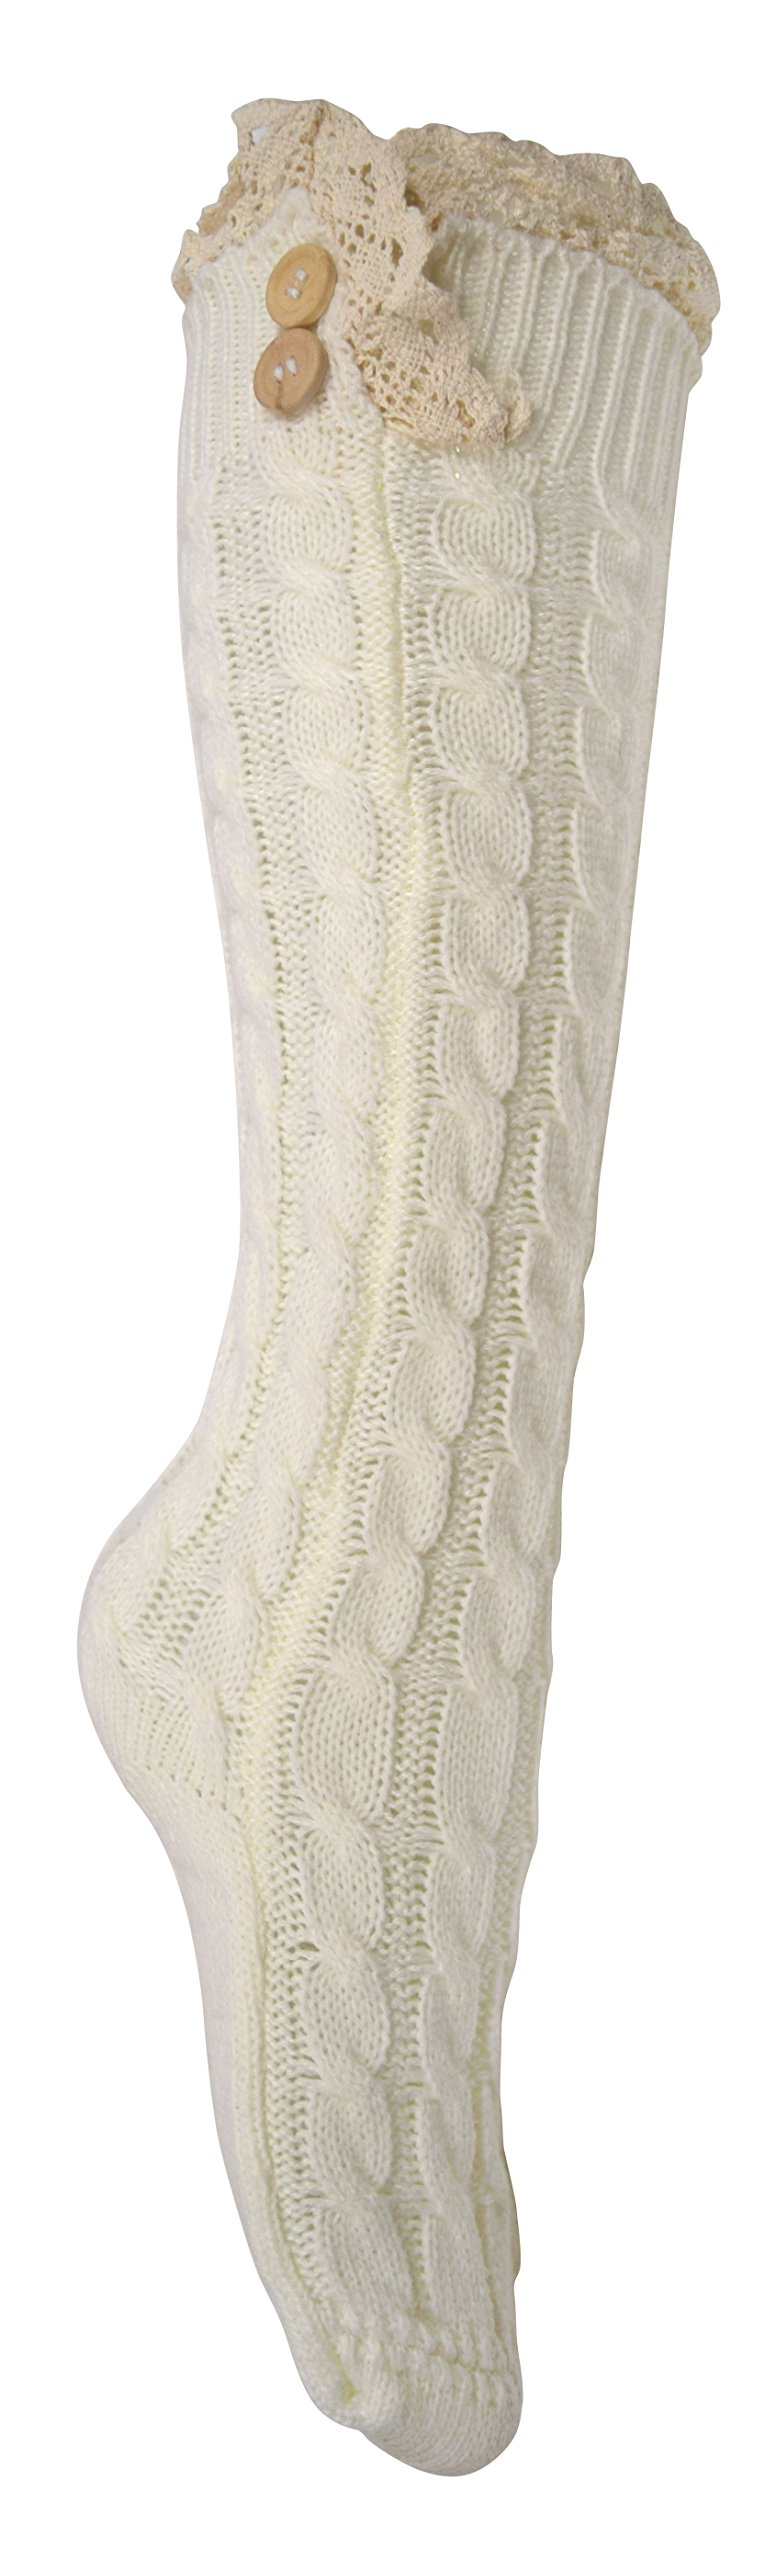 Peach Couture Cable Knit Boot Socks with Lace & Buttons Vintage Victorian Style